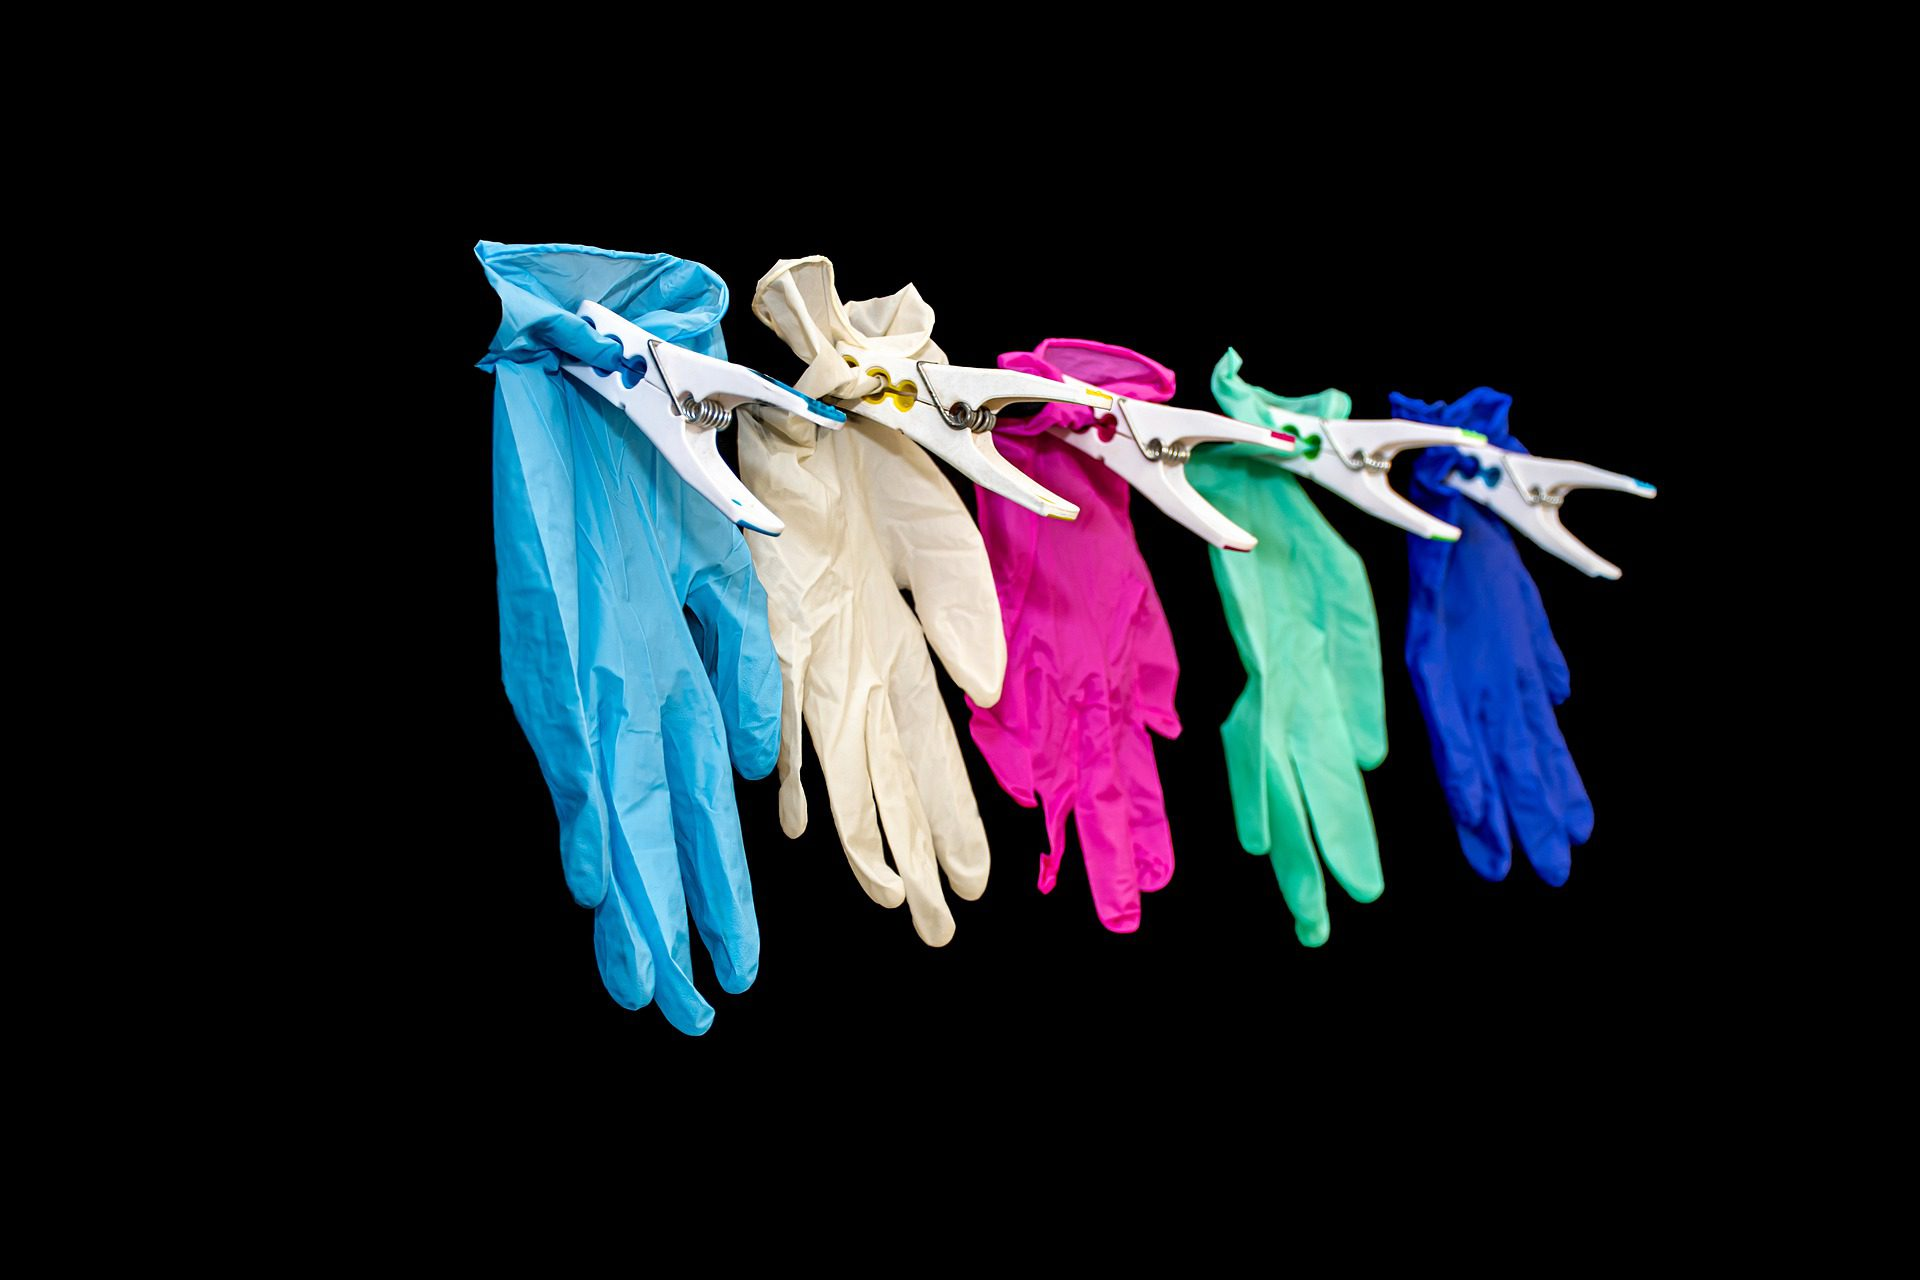 Colourful gloves pegged in a line on a black background